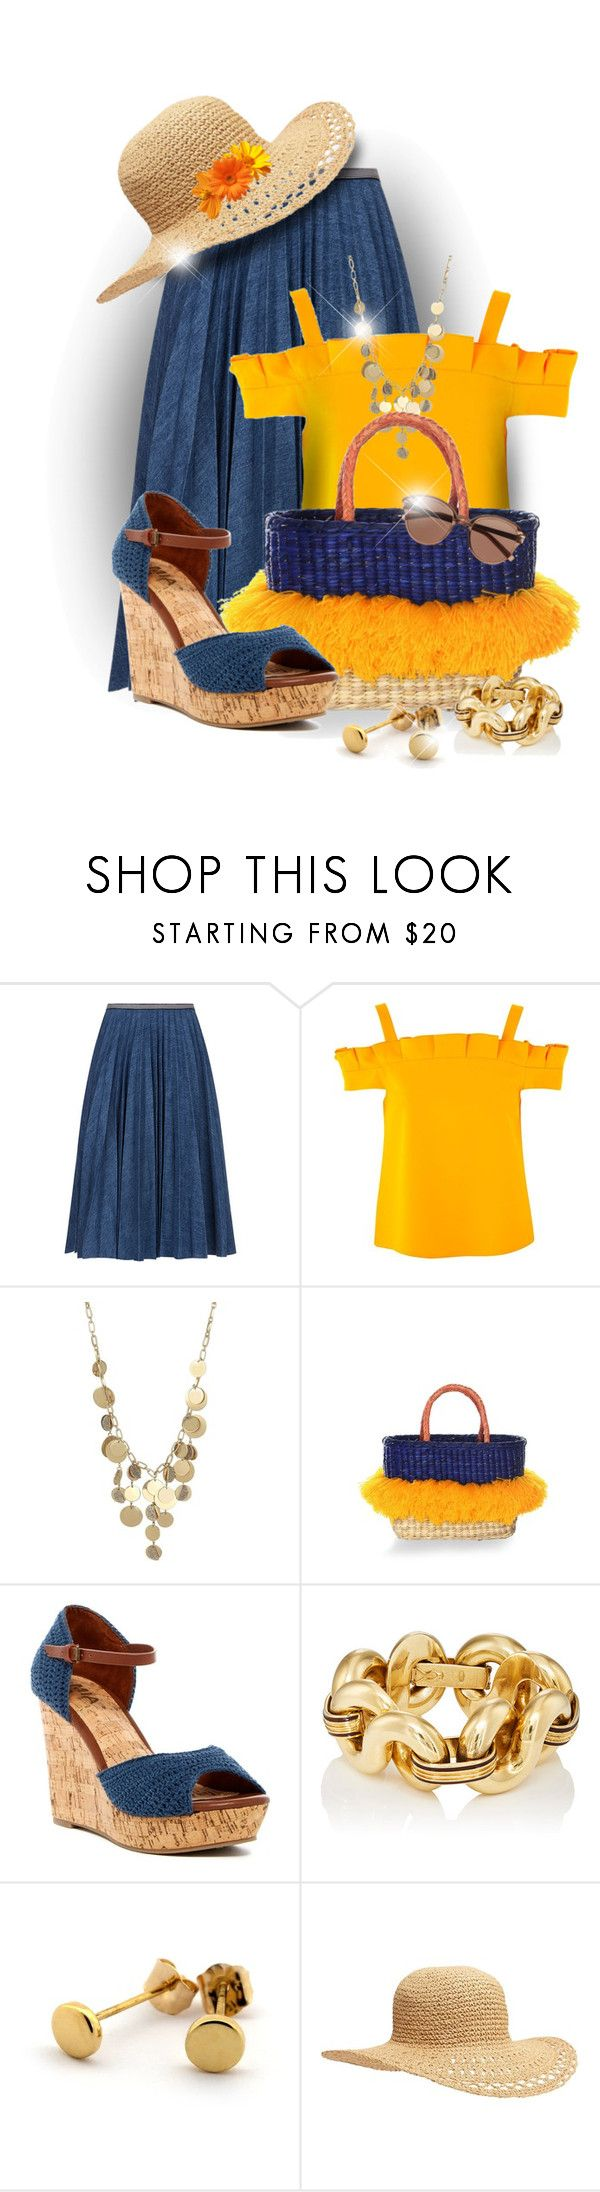 """""""Raffia Tote Bag"""" by elona-makavelli ❤ liked on Polyvore featuring Leur Logette, Topshop, Kenneth Cole, Nannacay, MIA, Old Navy and Witchery"""